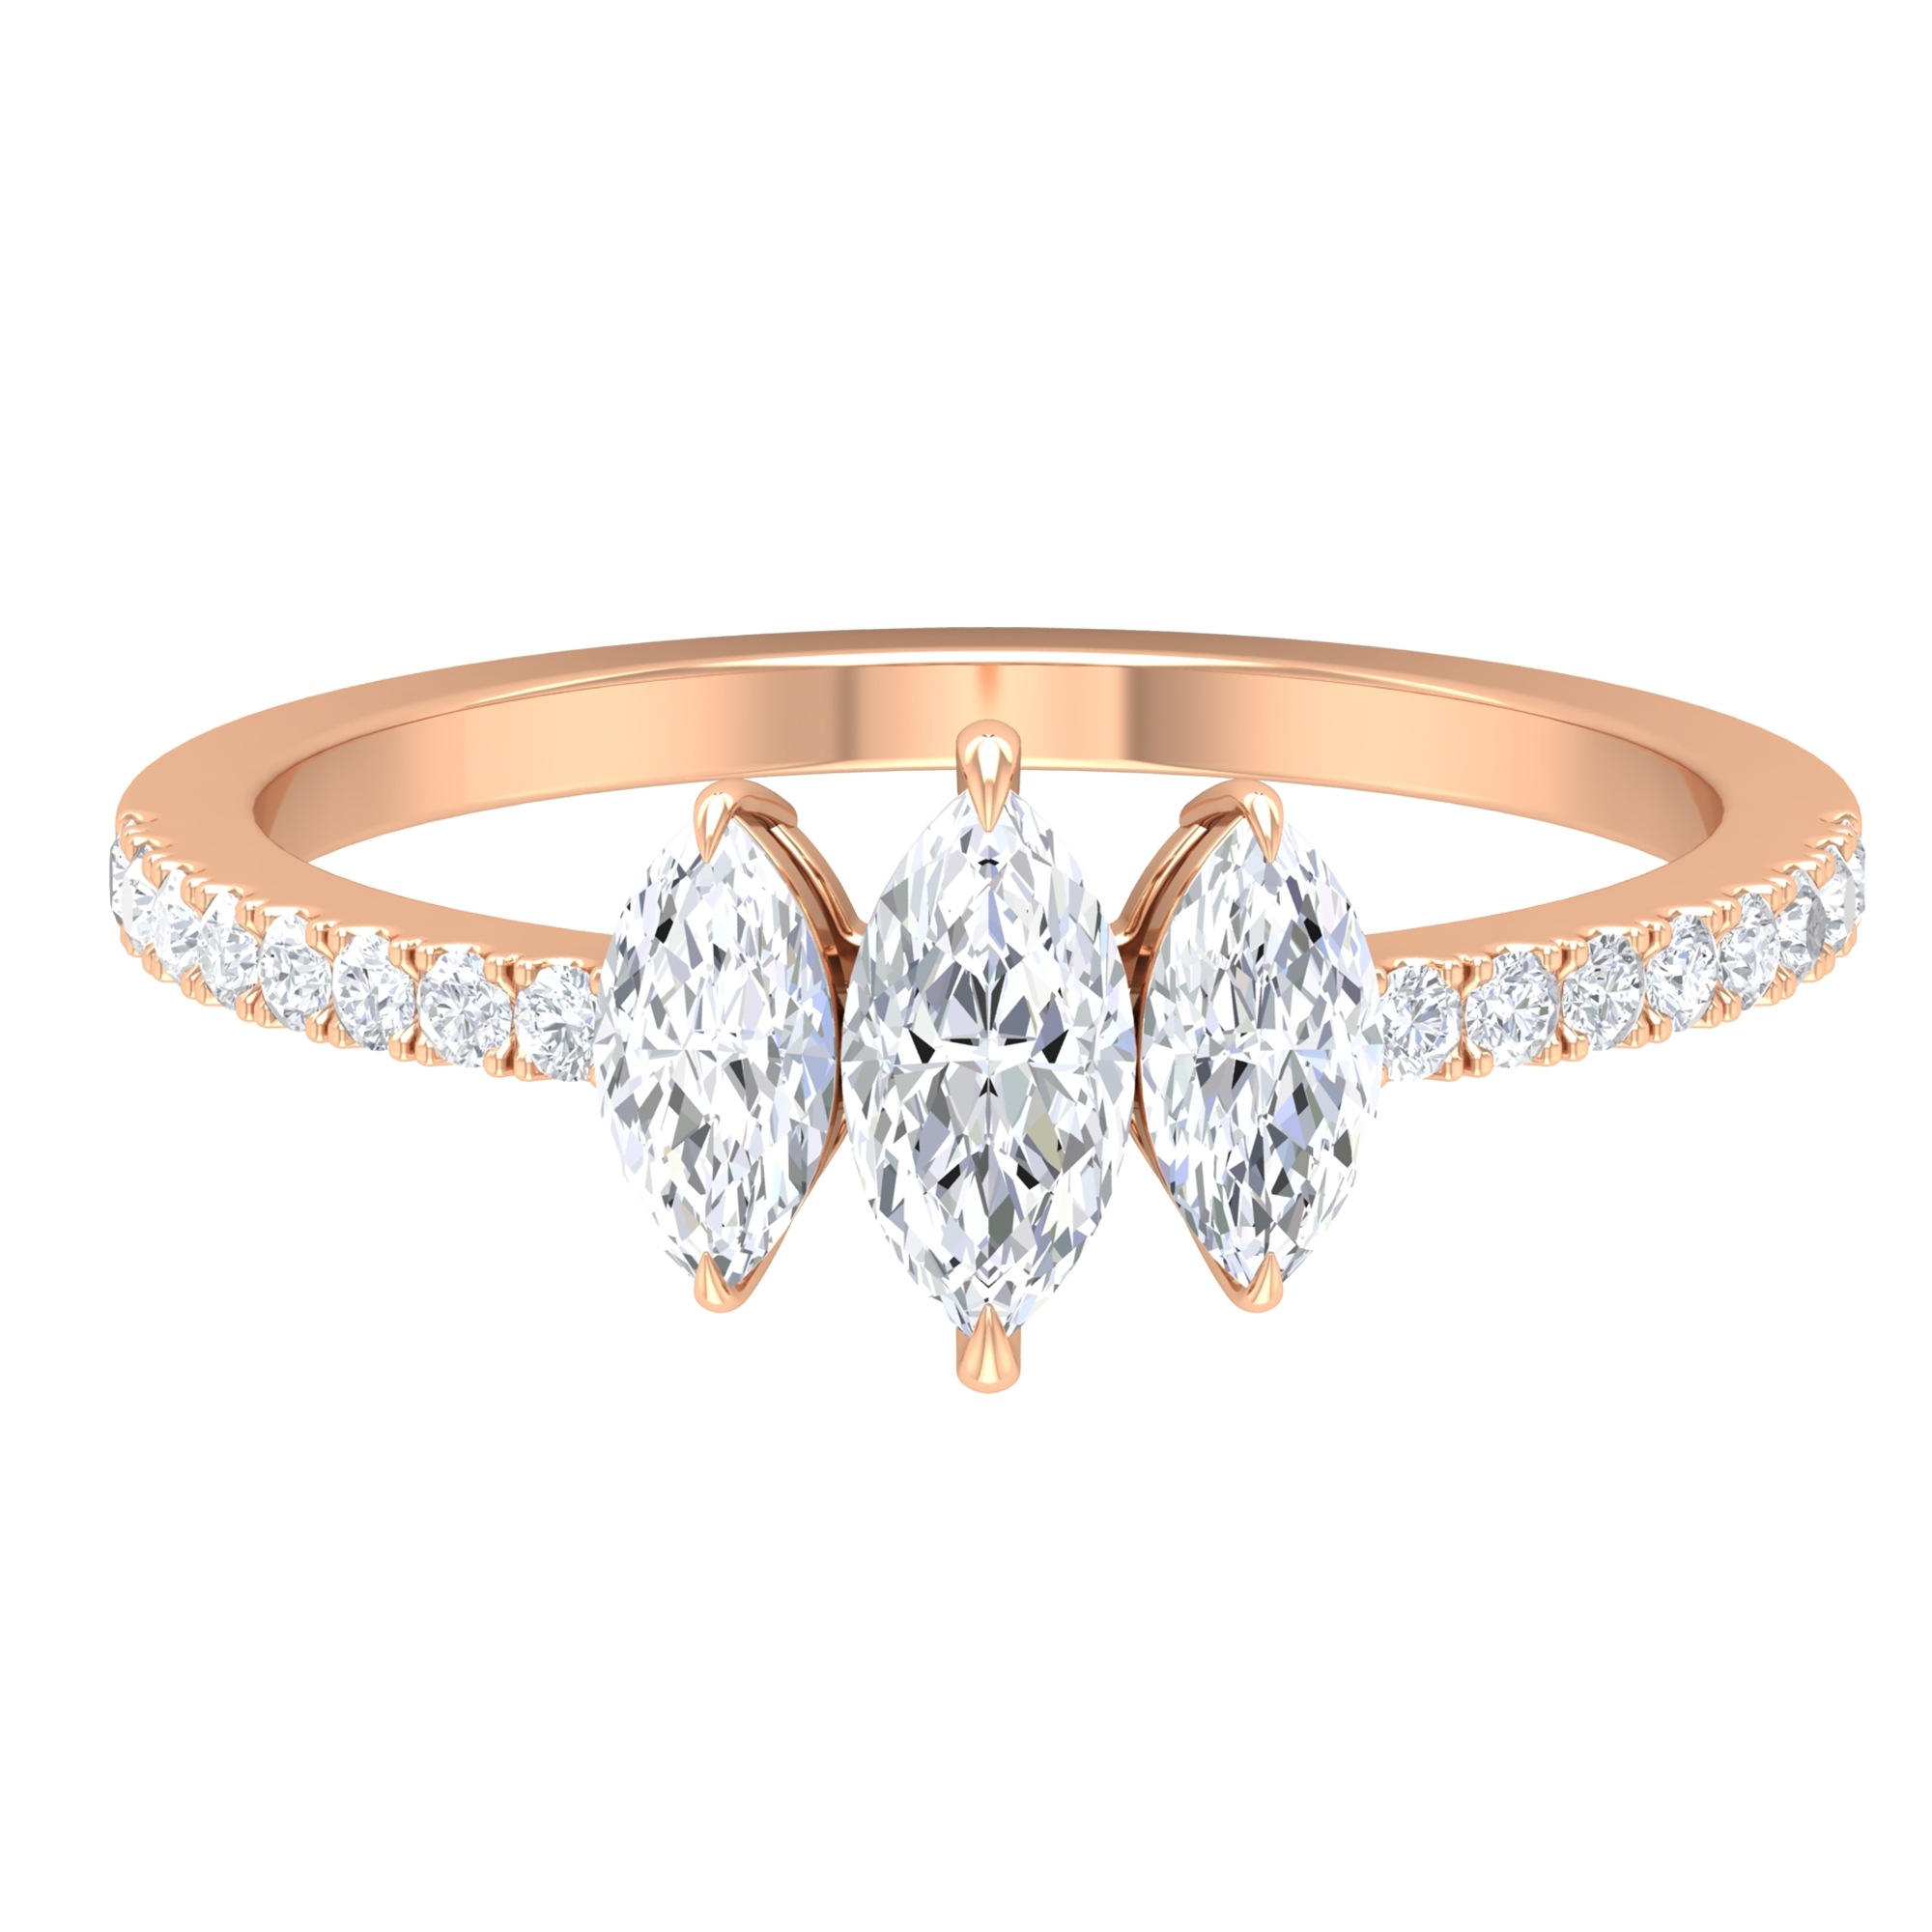 1 CT Marquise Cut Diamond Three Stone Engagement Ring with Side Stones